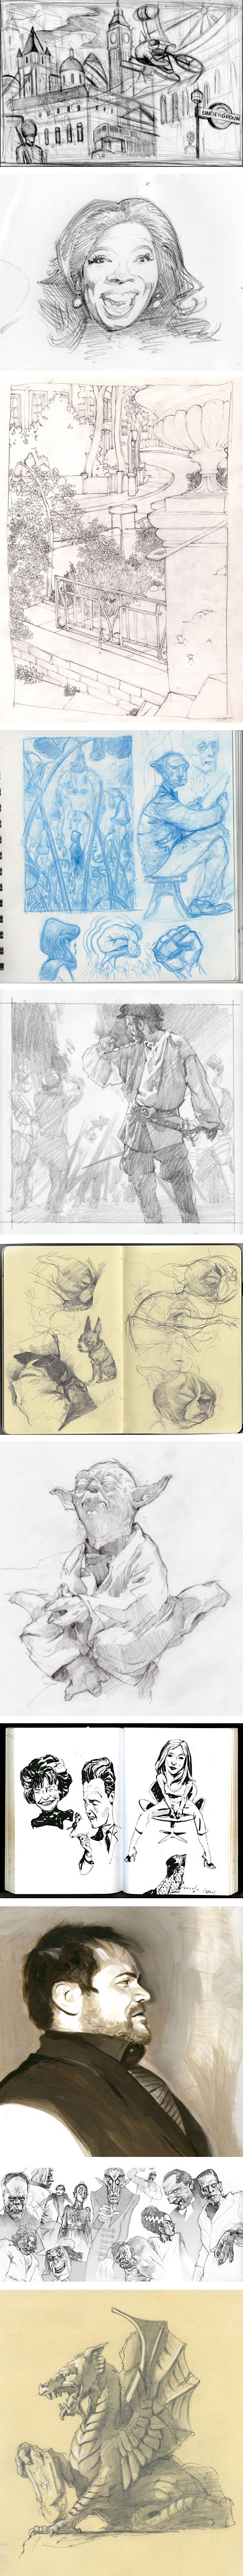 Warm Up Sketches + Working Process, from Richard Solomon artists: Murray Kimber, James Bennett, David Johnson, Jon Foster, Gregory Manchess, Scott Brundage, Tyler Jacobson, Tim Bower, Thomas Ehretsmann, Hermann Mejia, Mark Summers